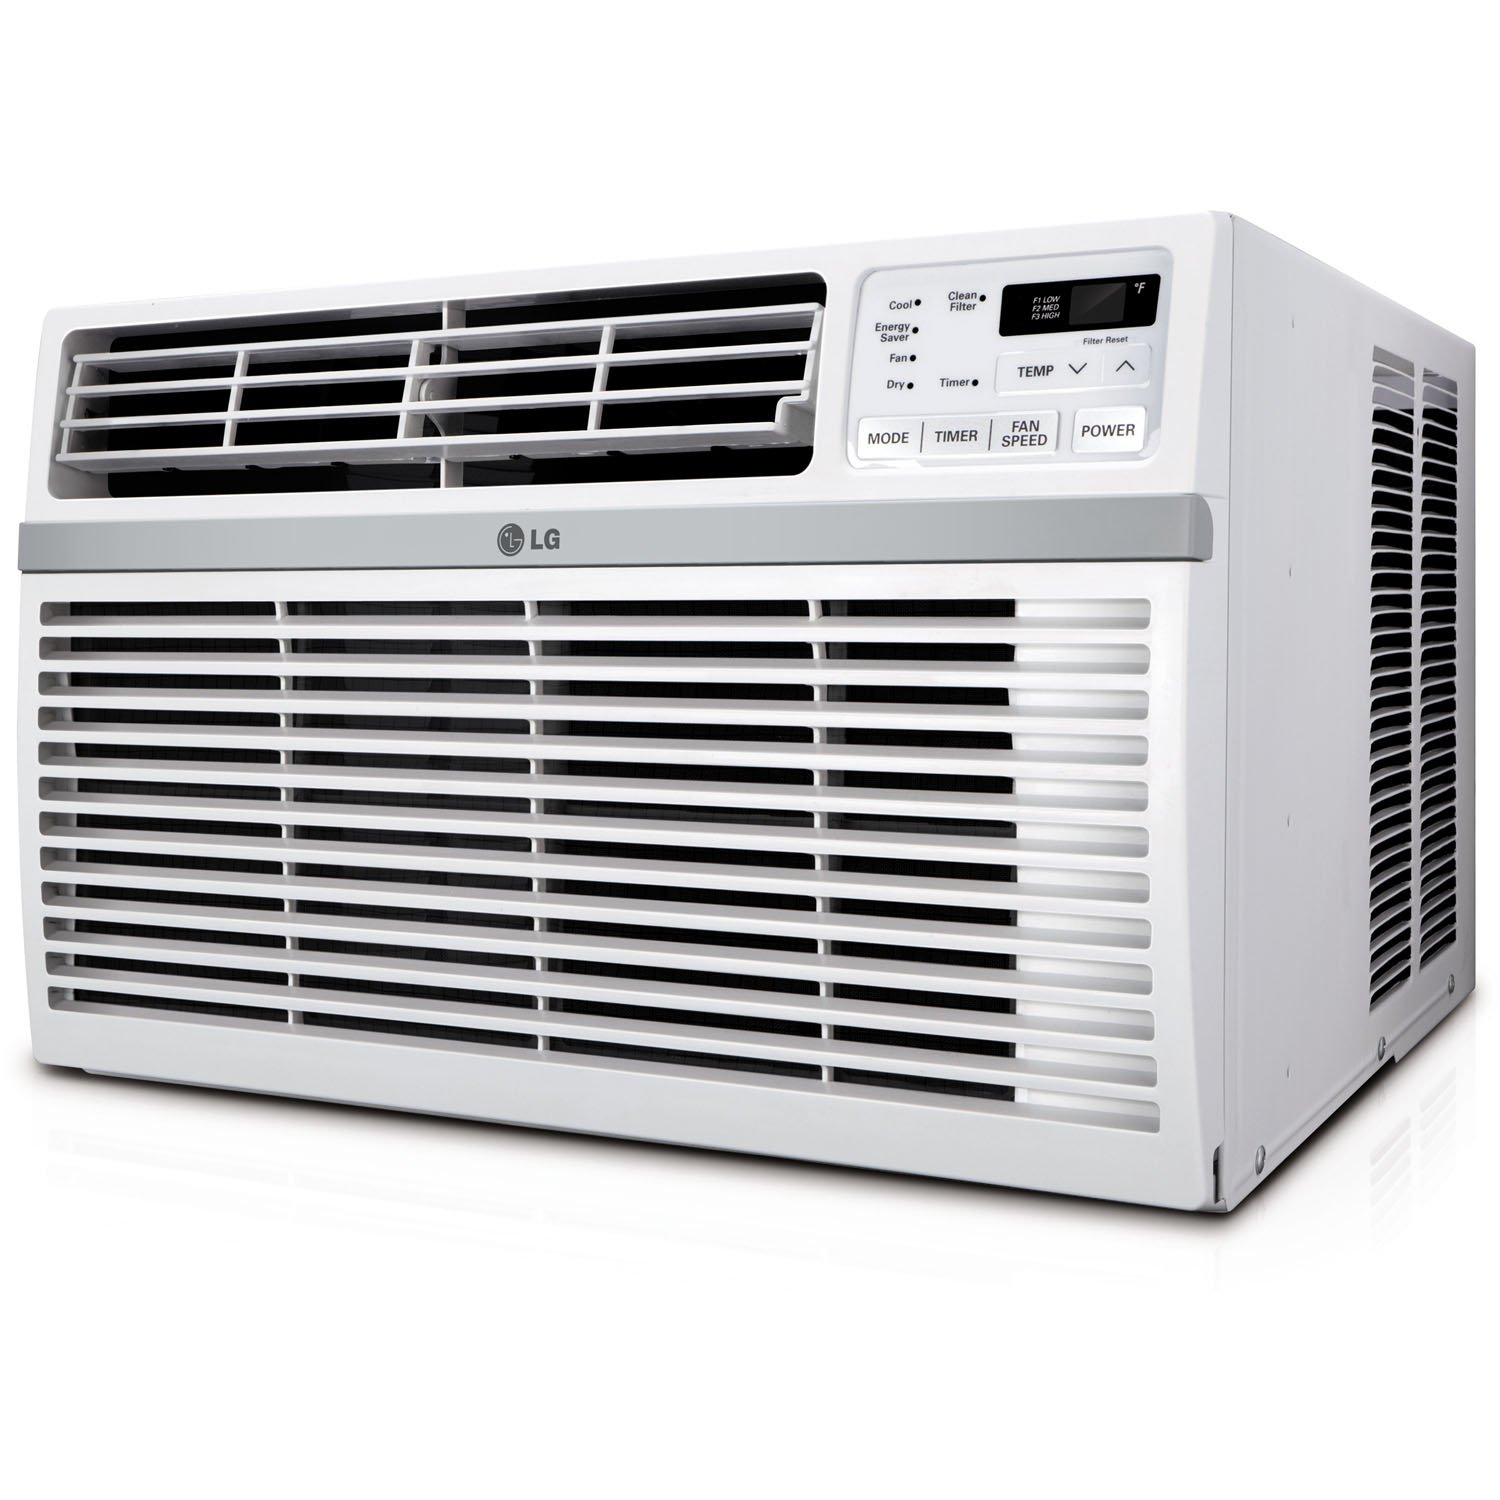 LG LW8016ER 8,000 BTU 115V Window-Mounted AIR Conditioner with Remote Control by LG